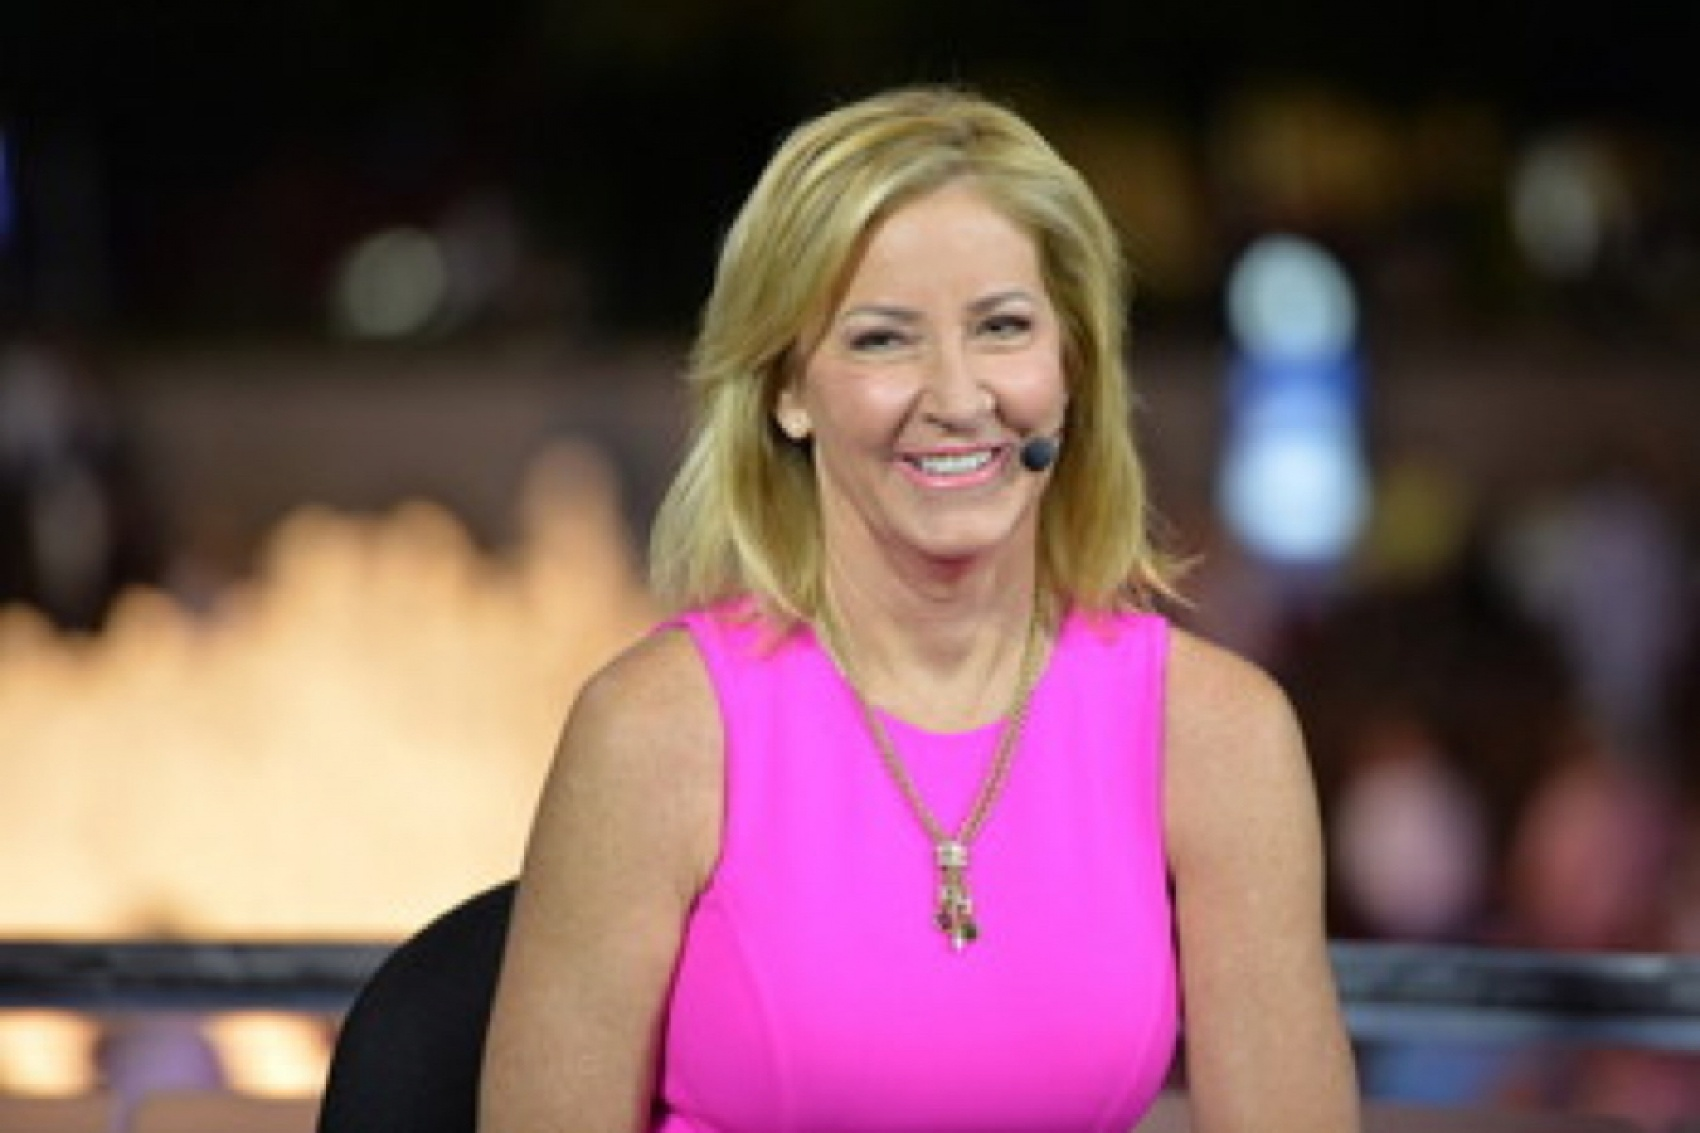 Watch Chris Evert 18 Grand Slam singles titles video